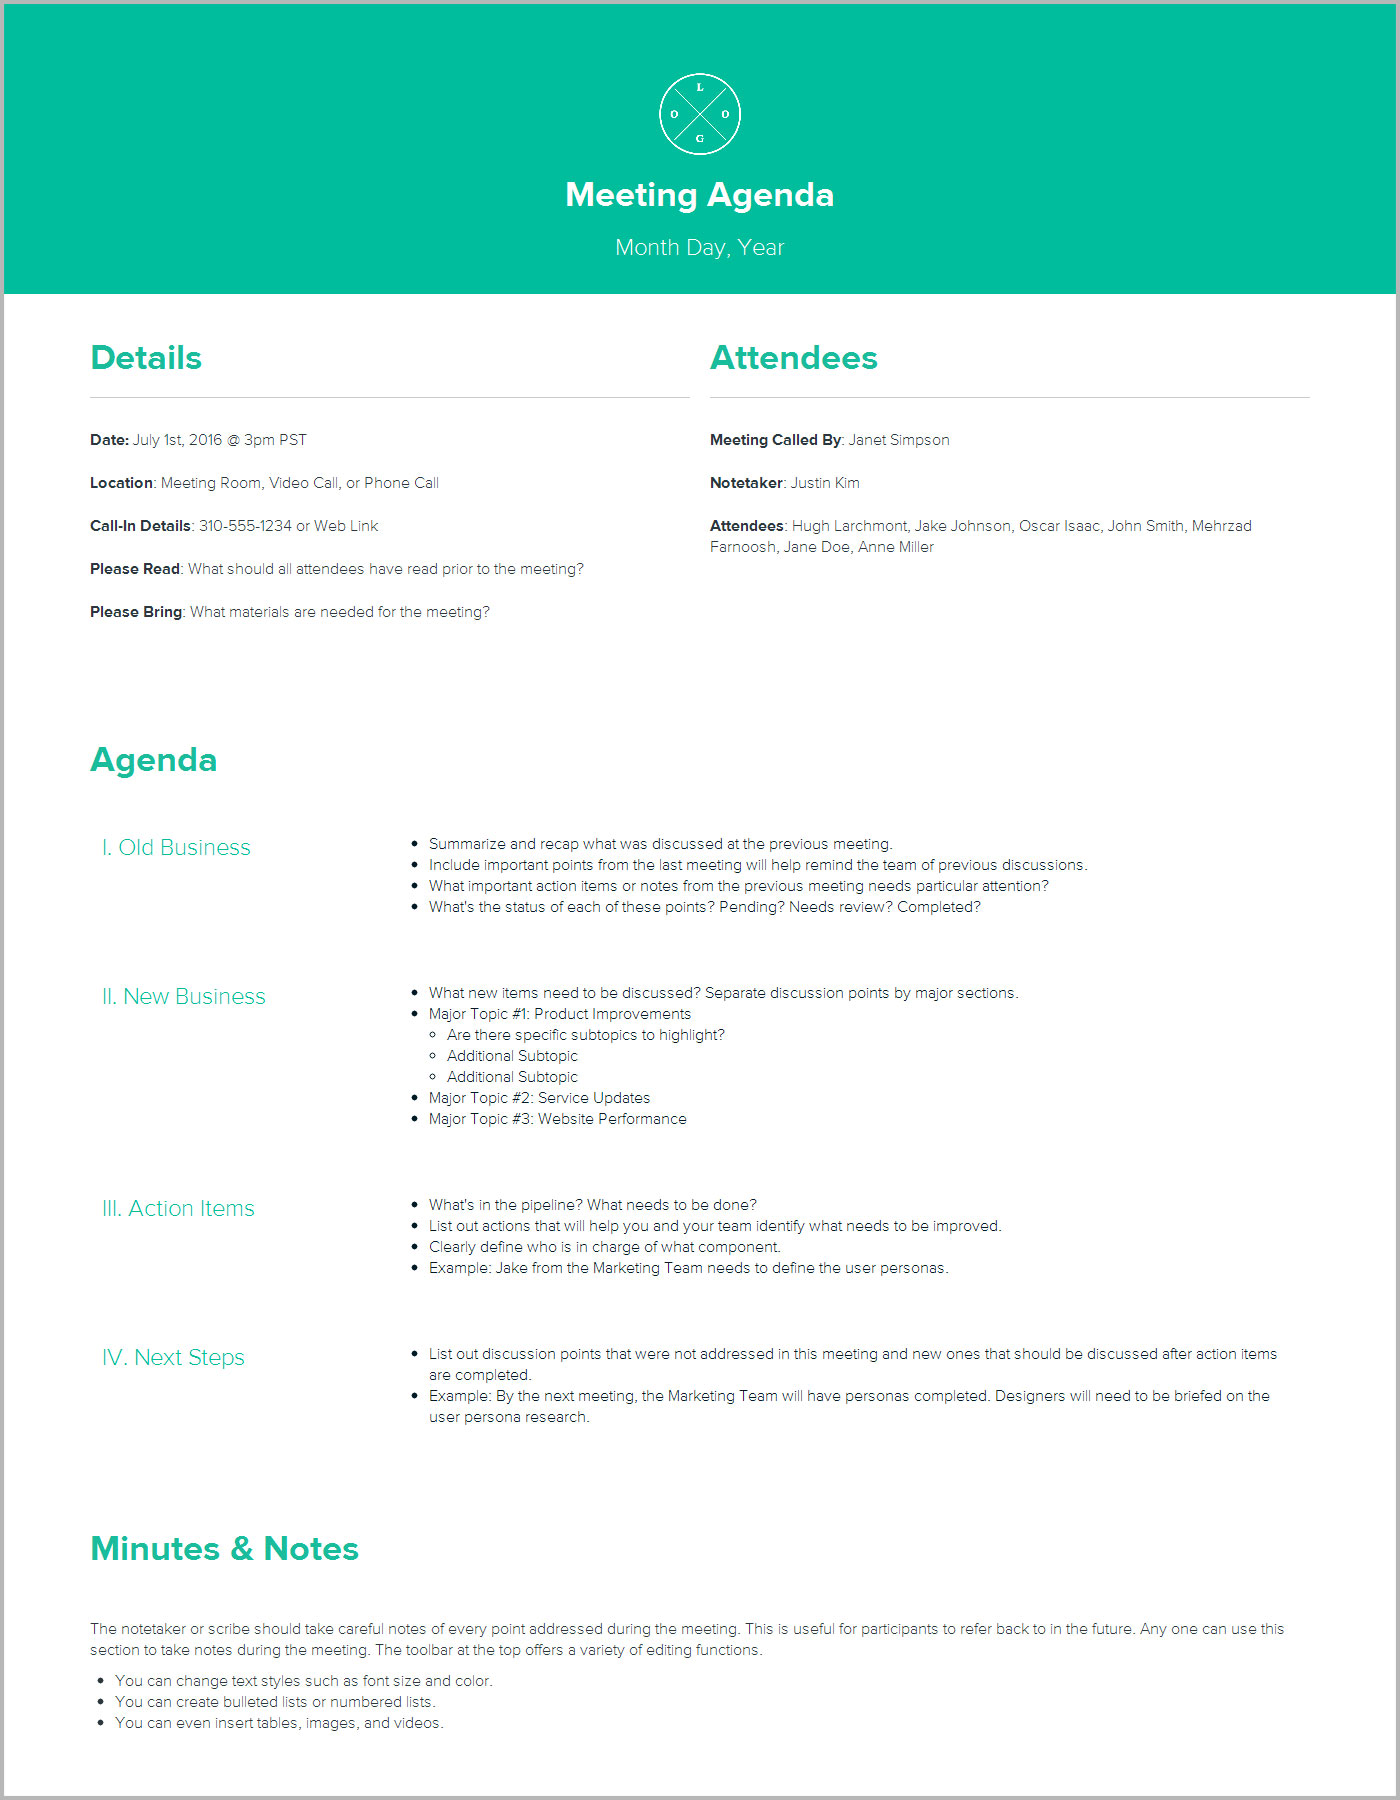 How to create a meeting agenda xtensio meeting agenda template by xtensio maxwellsz